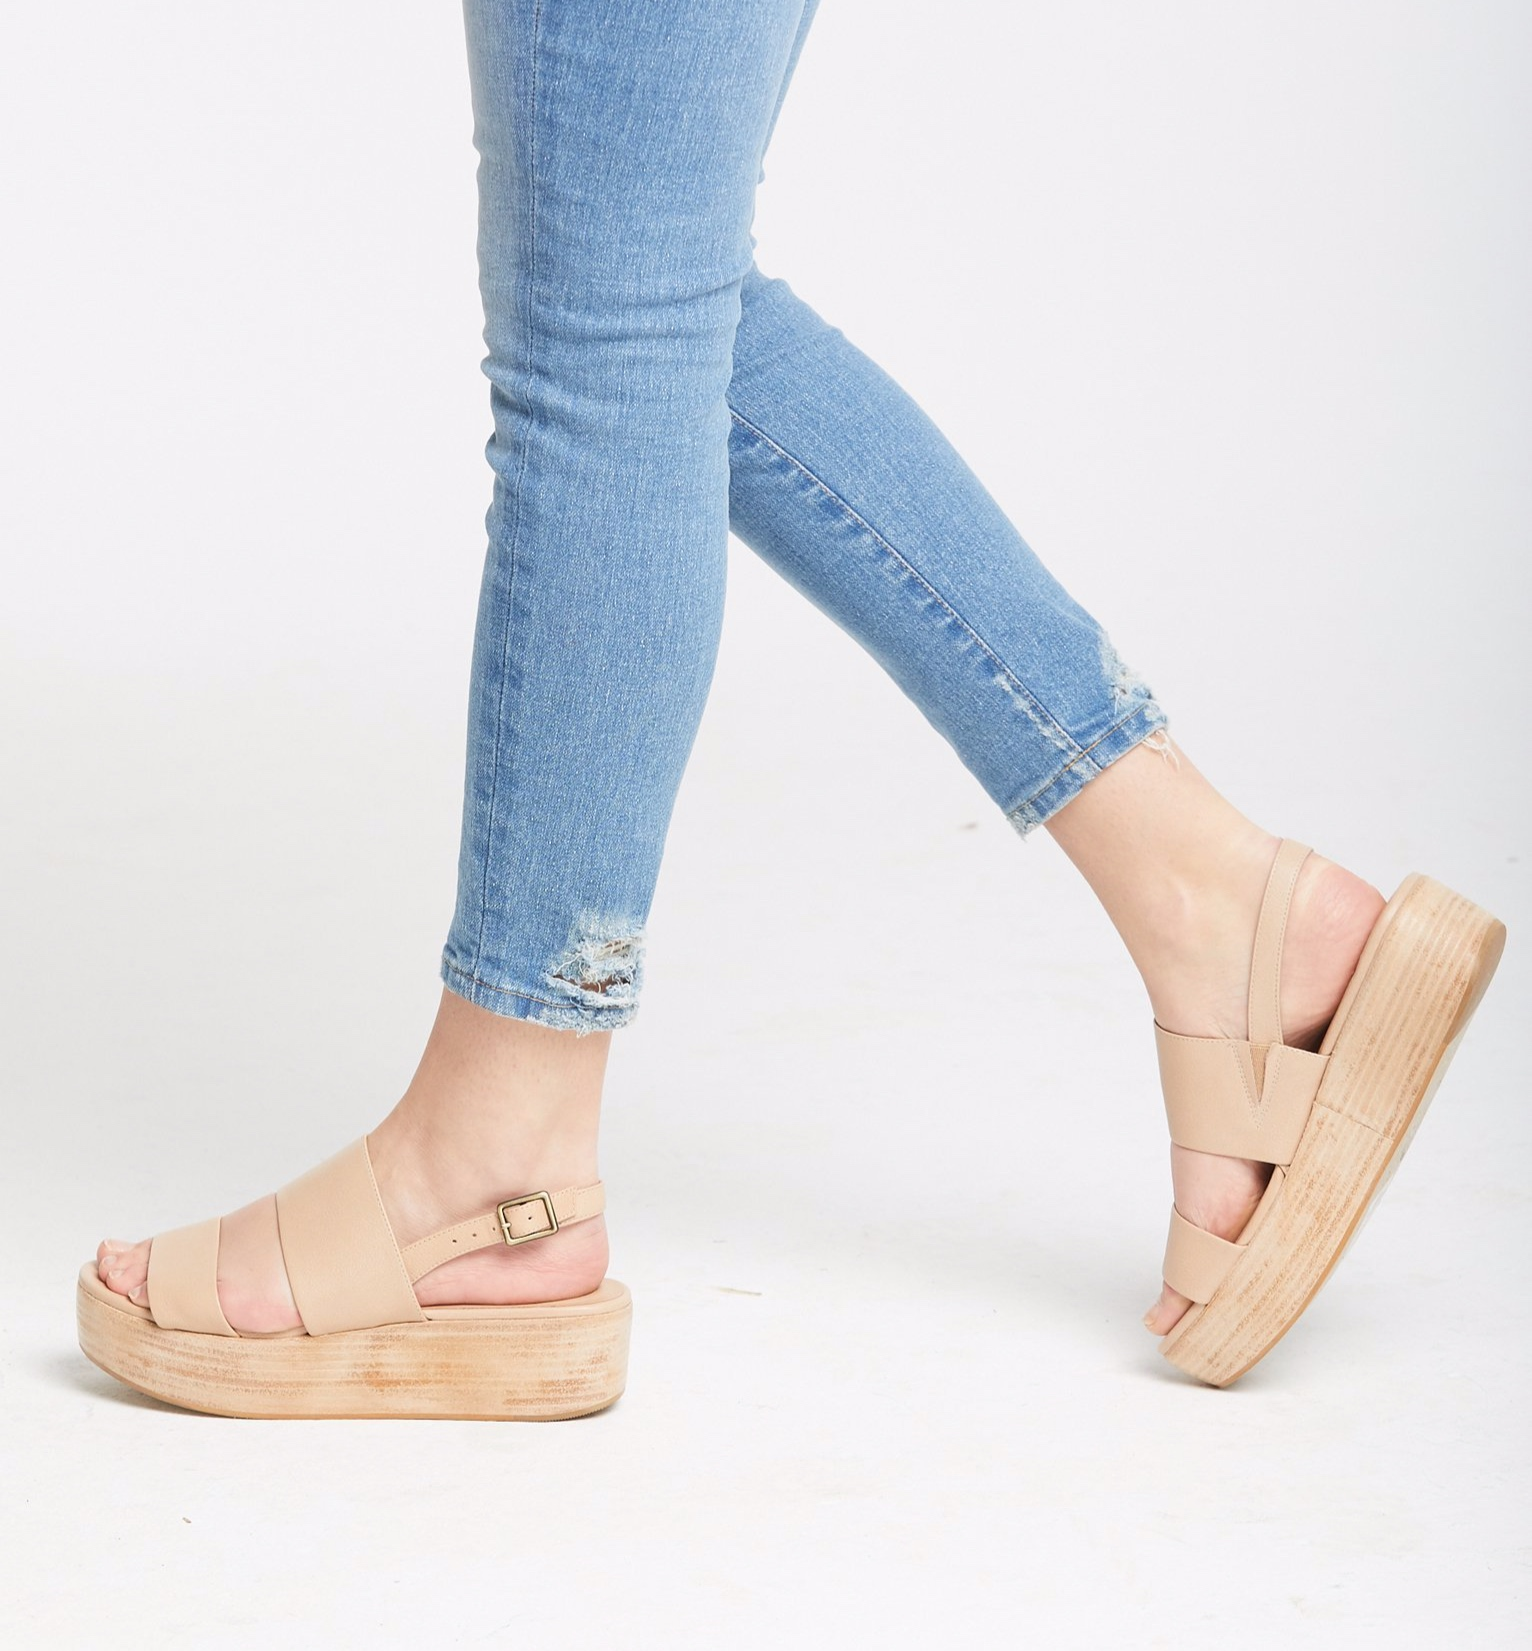 ABLE Sandals, $128